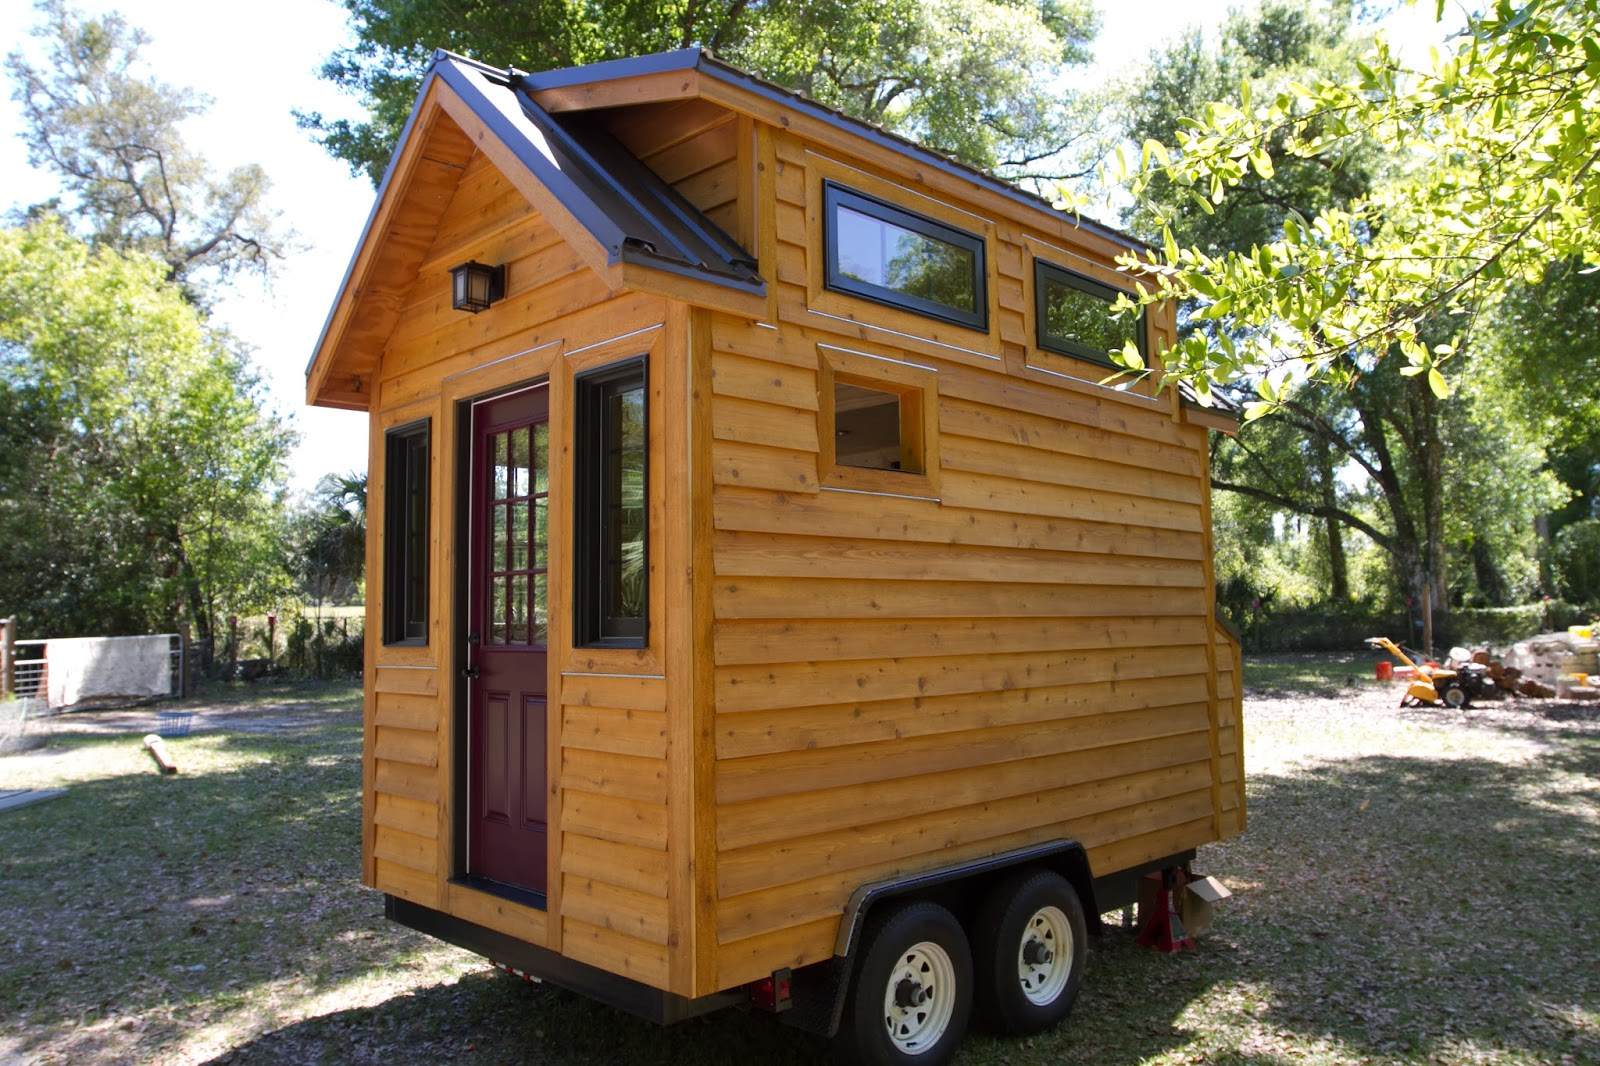 New Tinyhouse In Sweden Tiny House Forum At Permies